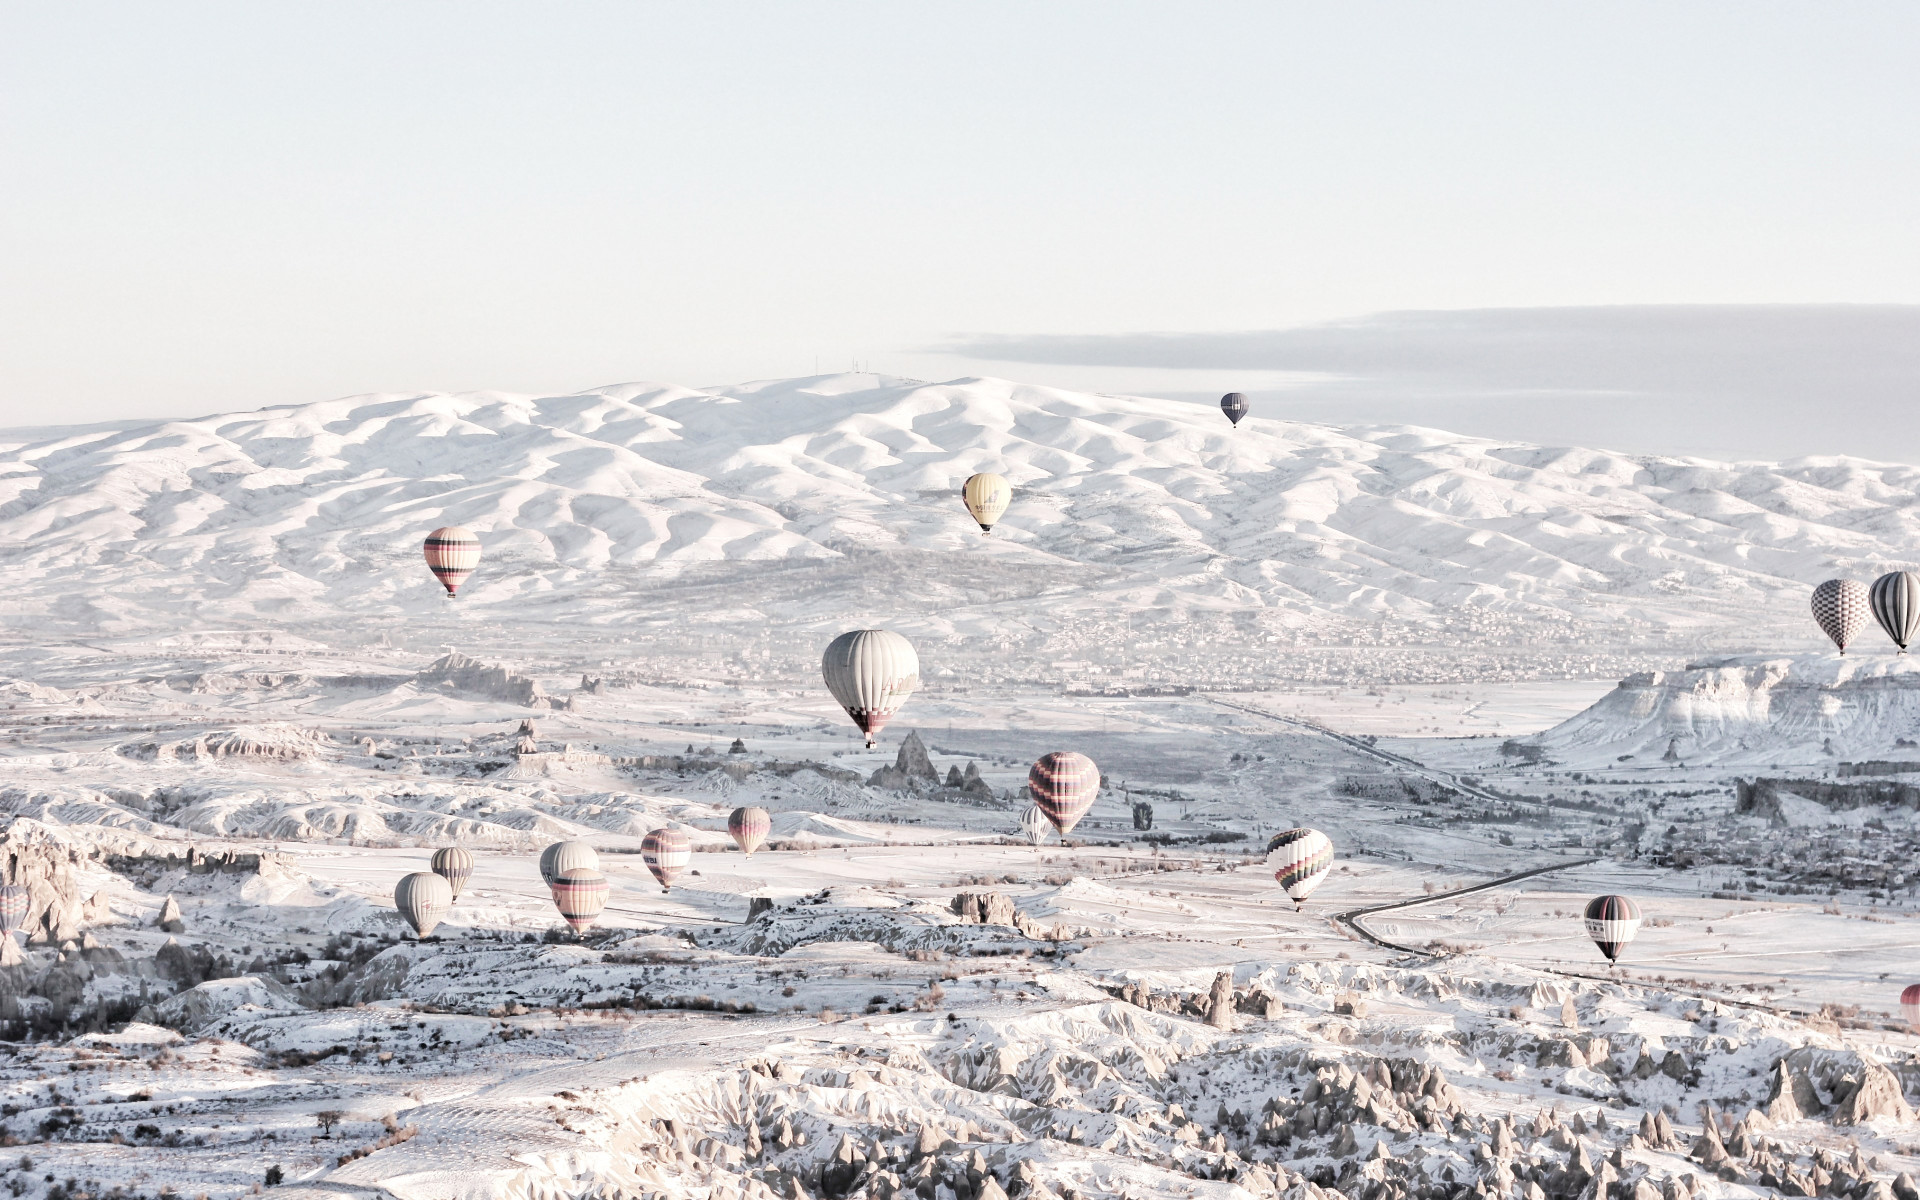 Hot air balloons in Winter landscape wallpaper 1920x1200